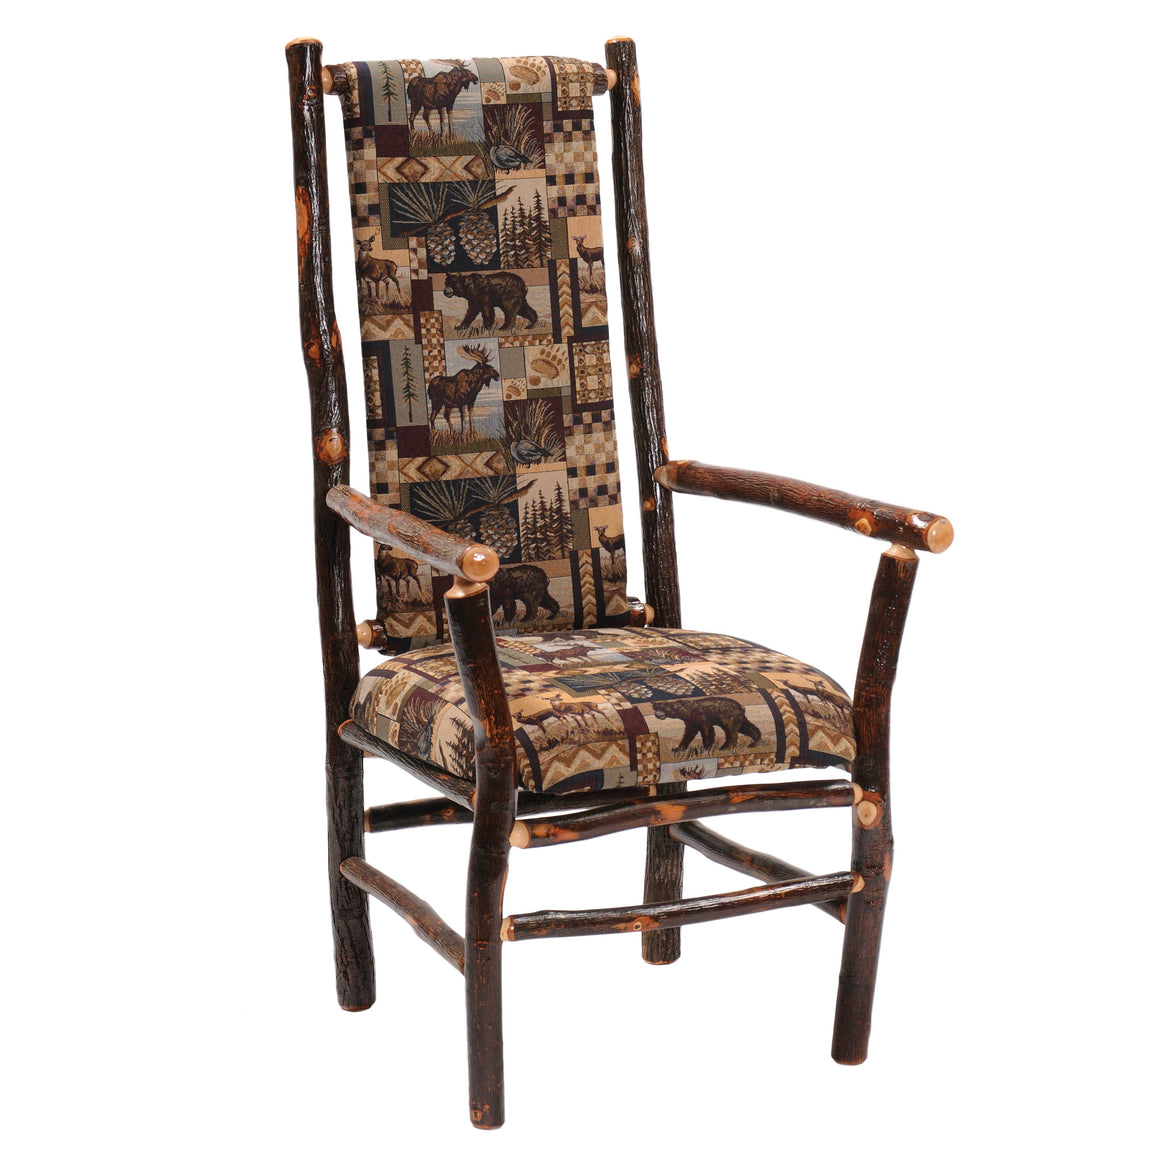 Natural Hickory Log High-back Upholstered Arm Chair - Standard Finish - Rustic Deco Incorporated